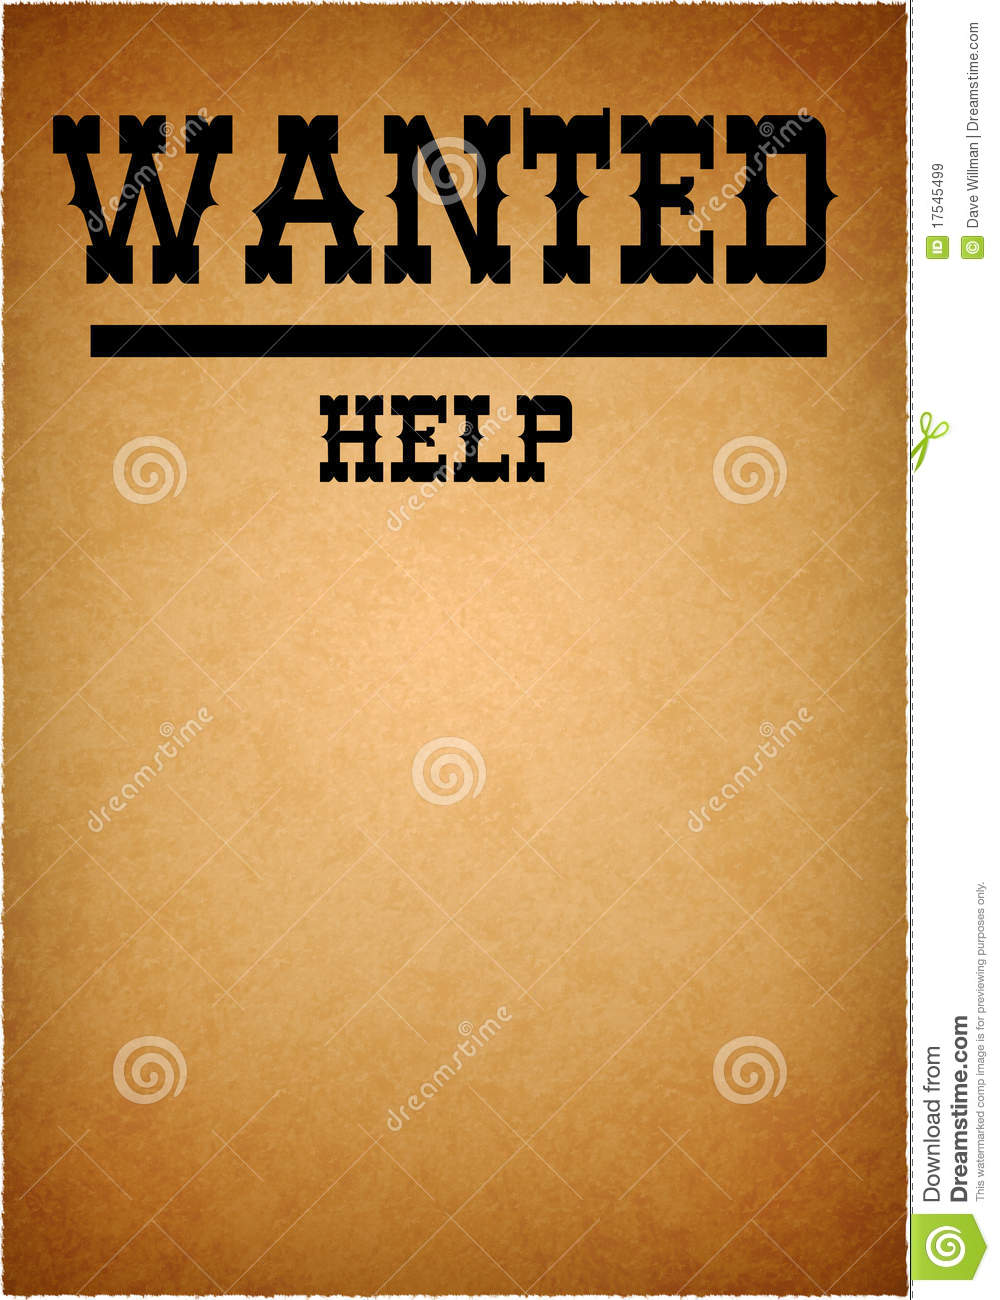 Help Wanted Poster Help wanted grunge poster